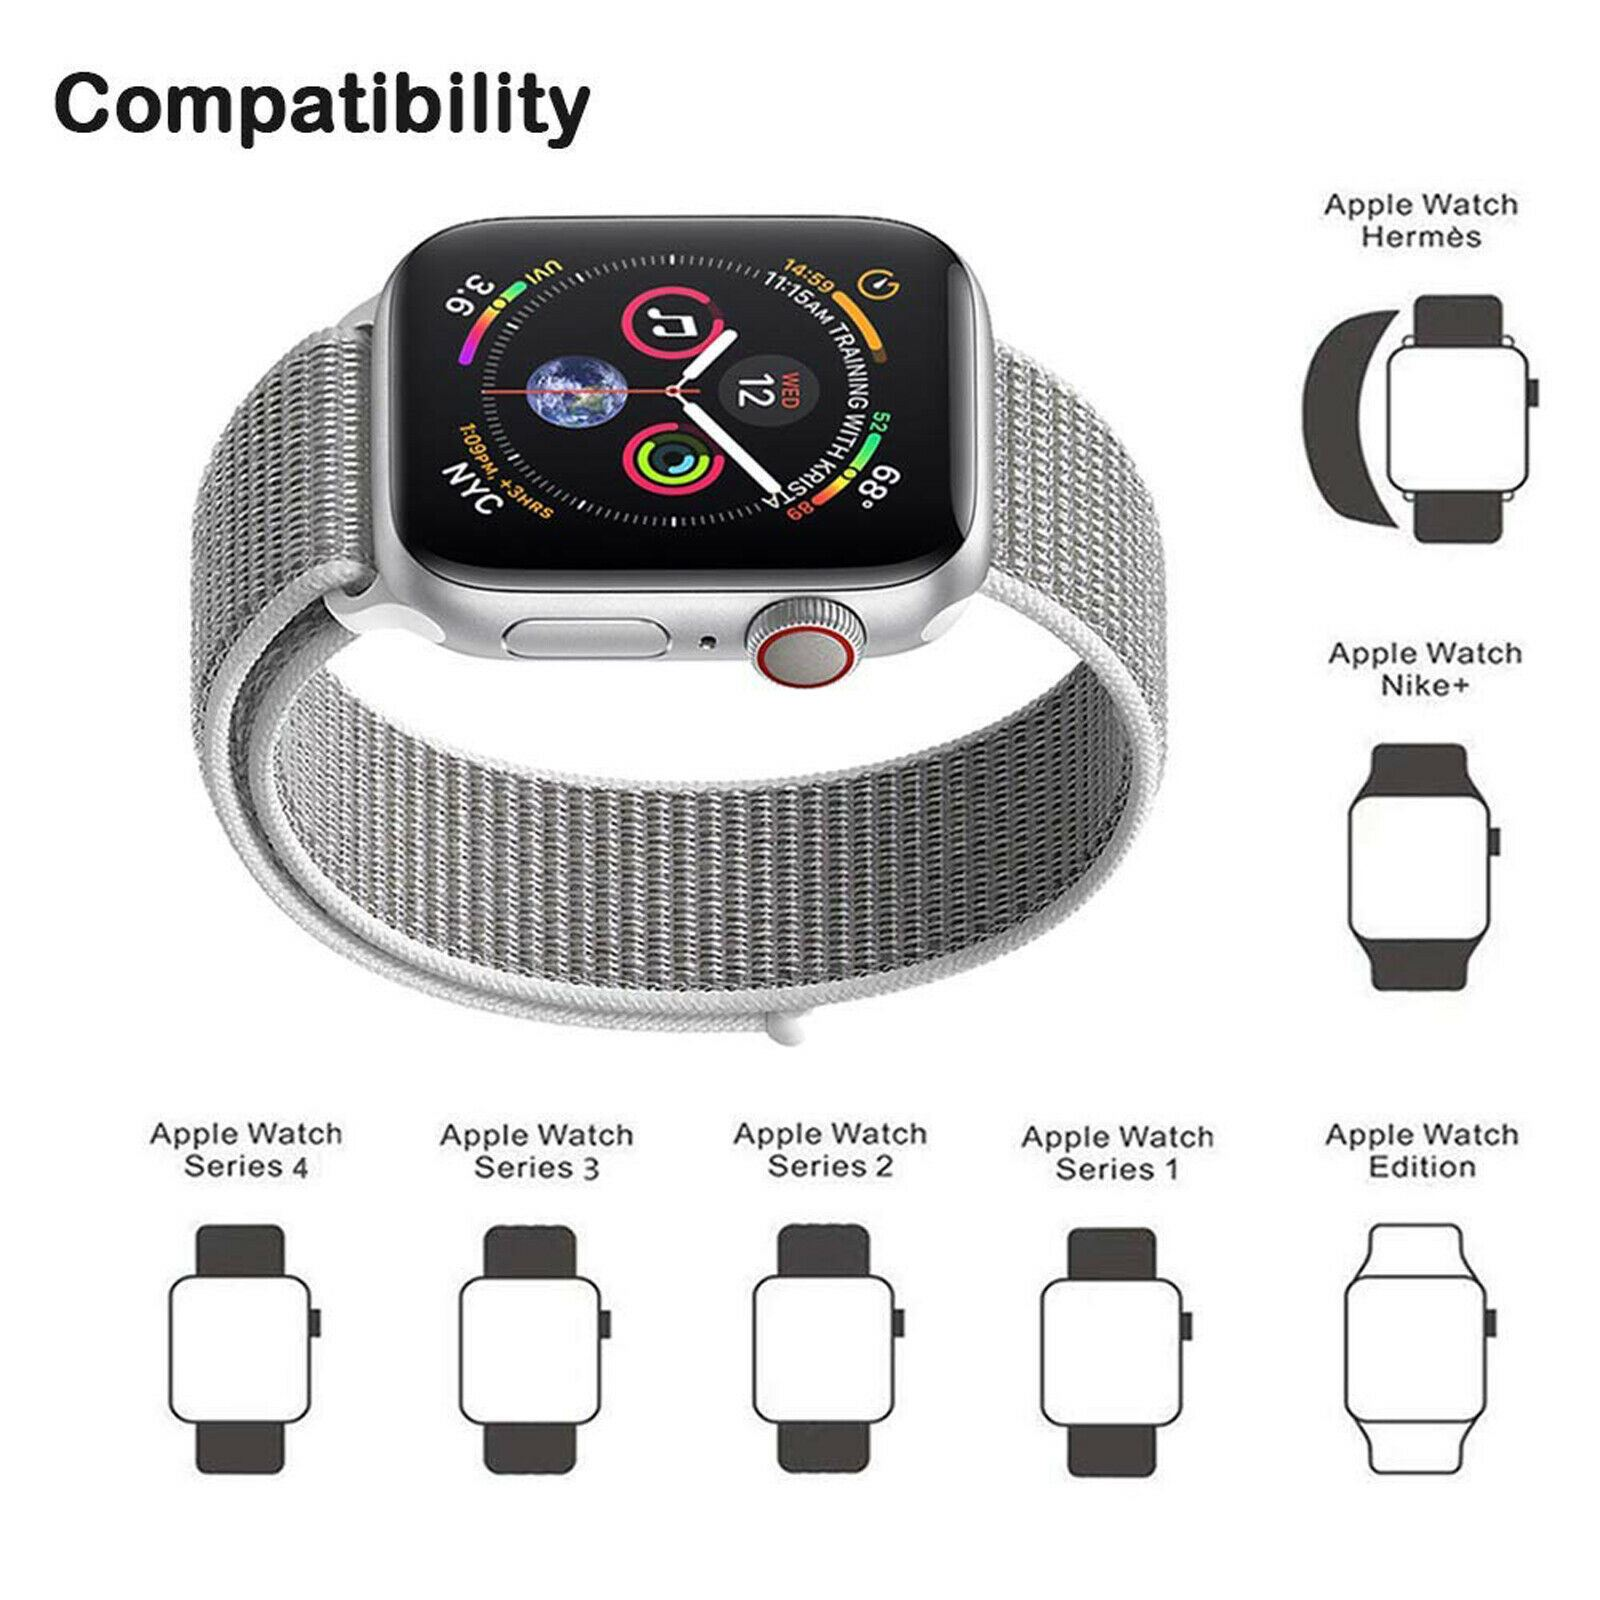 Band-Strap-For-Apple-Watch-Adjustable-Waterproof-Braided-Nylon-Material thumbnail 49